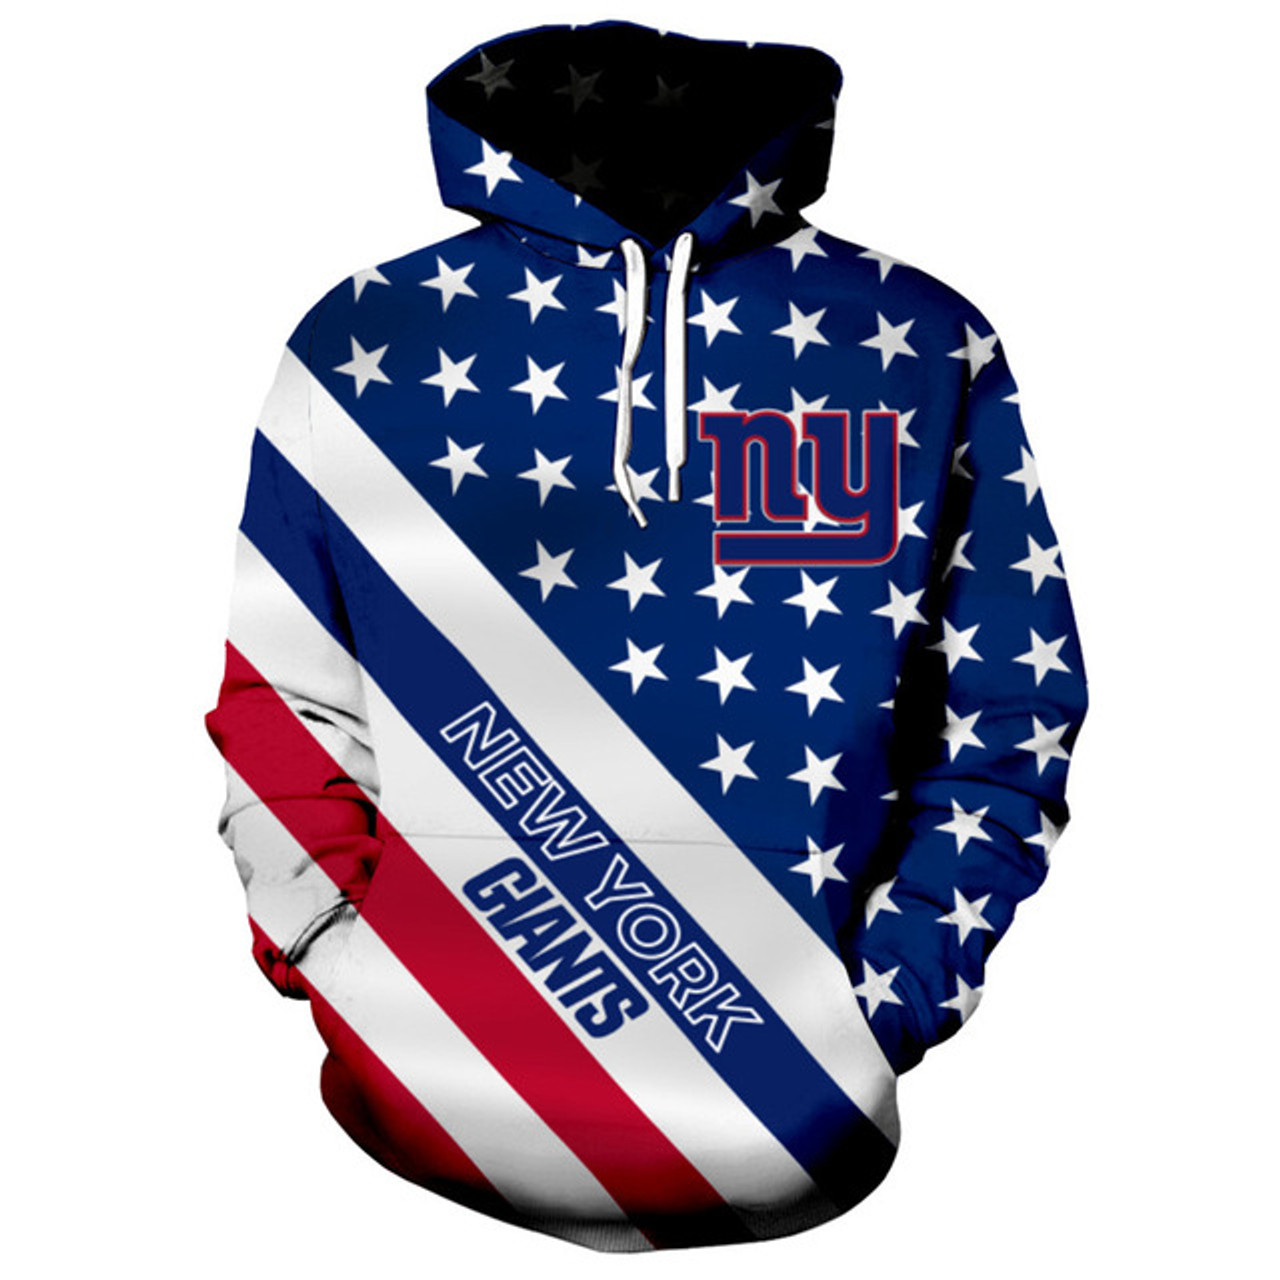 ad83f070 **(OFFICIALLY-LICENSED-N.F.L.NEW-YORK-GIANTS-TRENDY-PATRIOTIC-PULLOVER-TEAM-HOODIES/NICE-CUSTOM-3D-EFFECT-GRAPHIC-PRINTED-DOUBLE-SIDED-ALL-OVER-OFFICI...